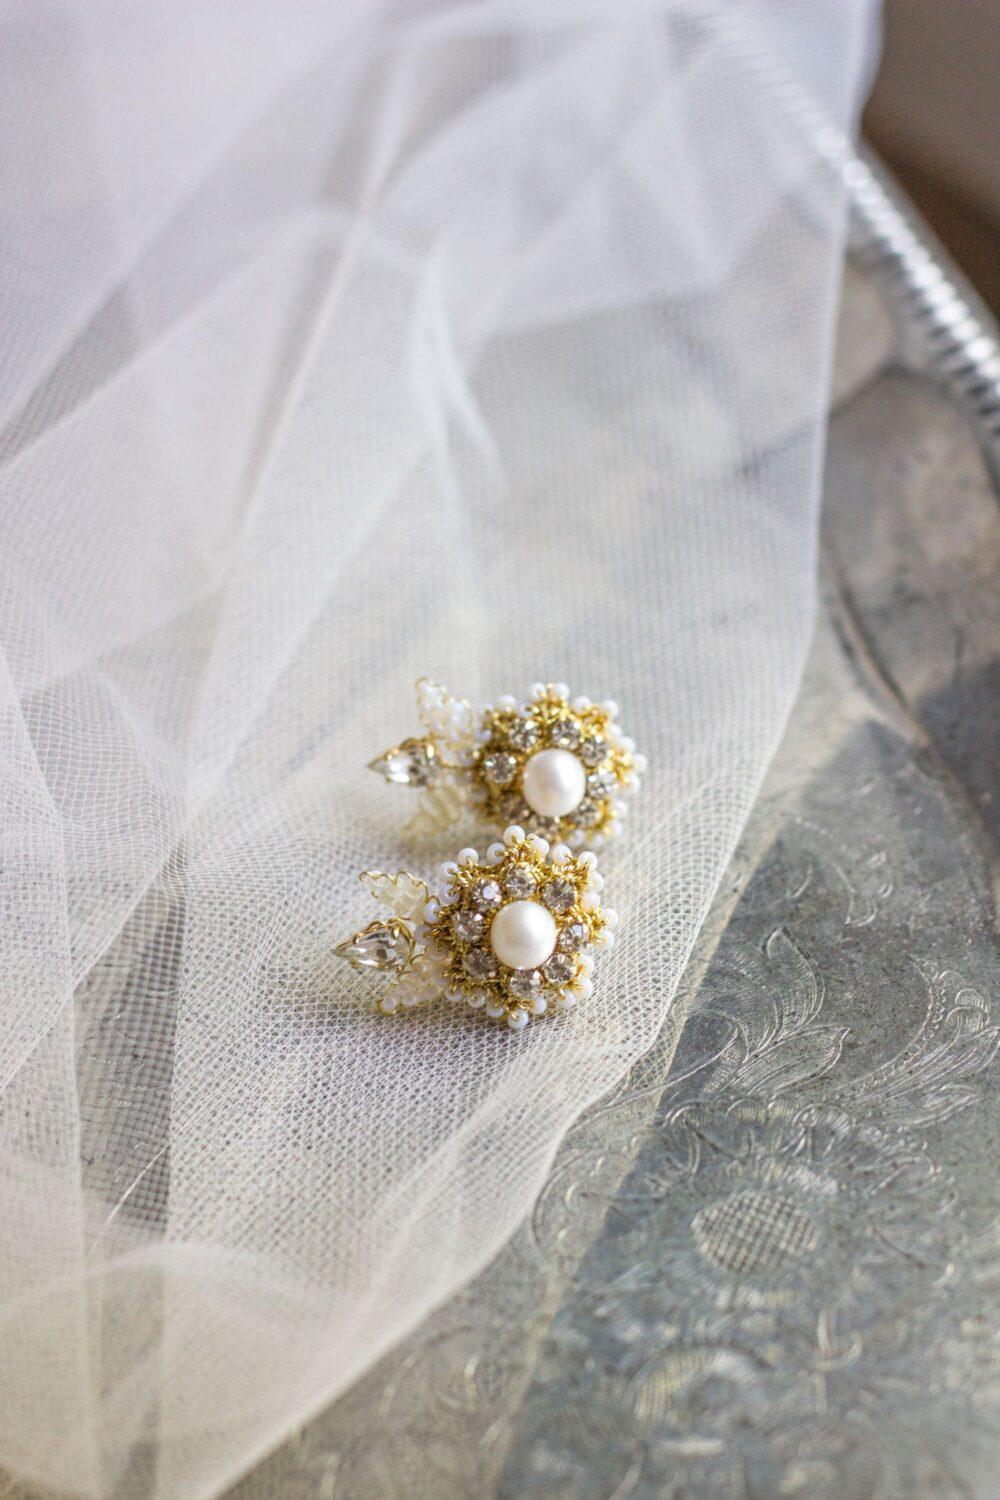 Pearl Crystal Wedding Stud Earrings | Gold Climber For Bride Vintage Style Bridal Studs & Jewelry